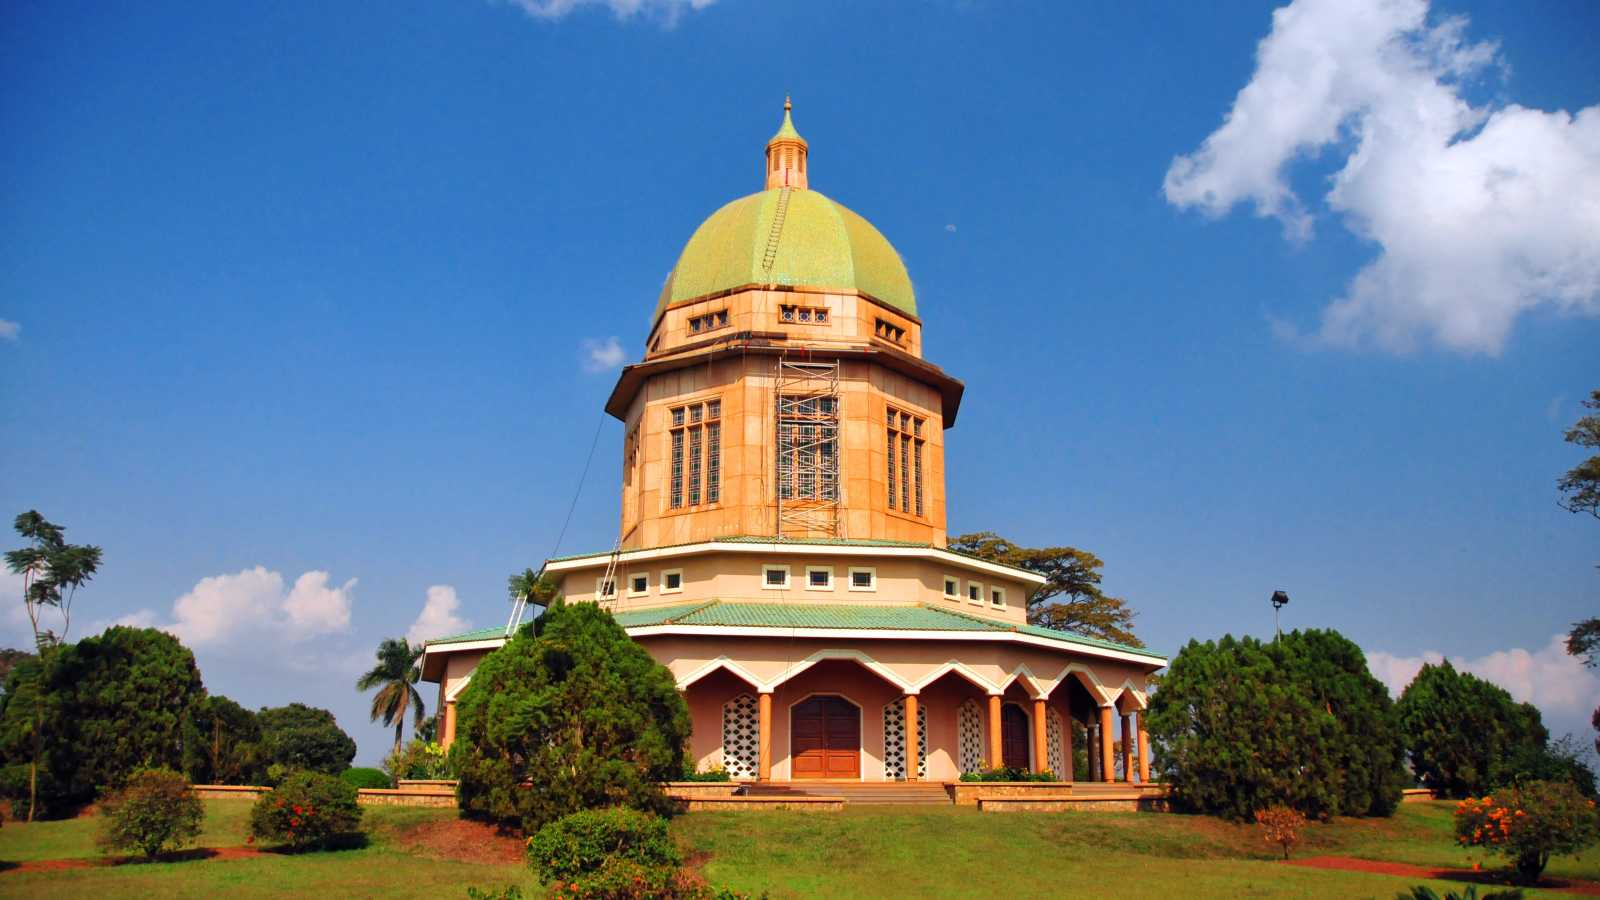 View of the Bahai Temple in Kampala Uganda